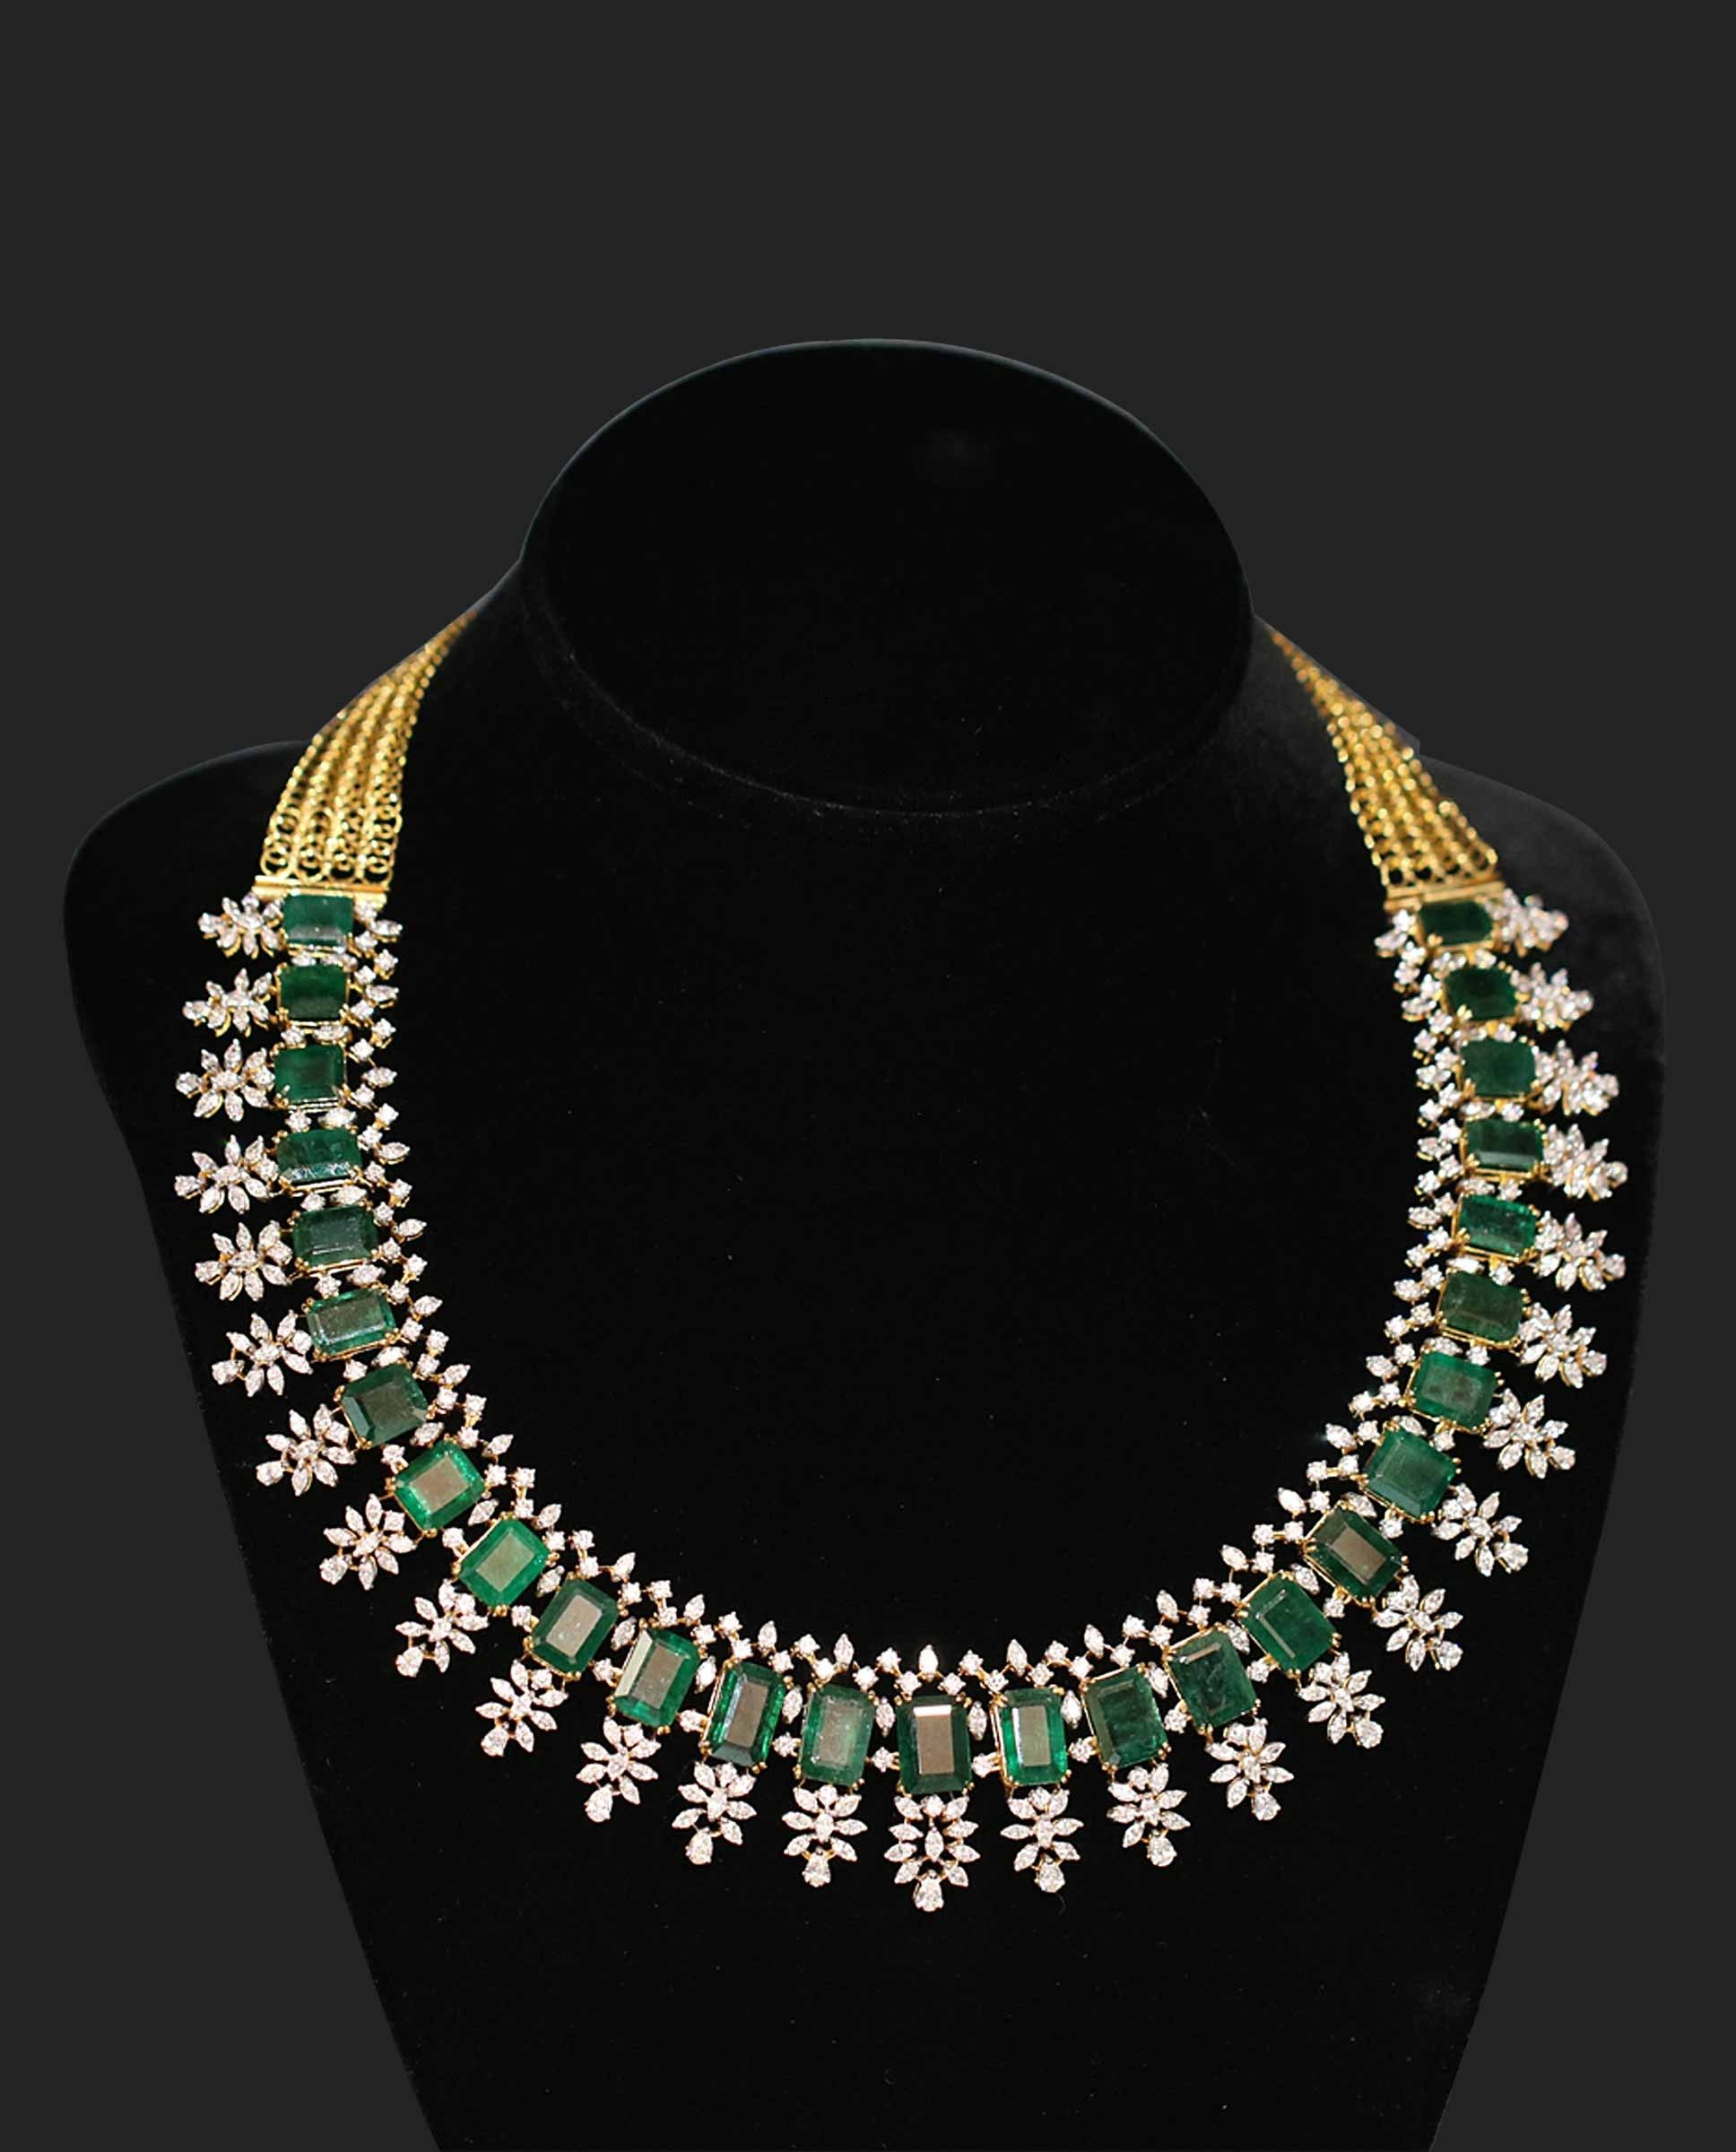 products store jewellery necklaces necklace designer vvs diamond neck pid sets broad